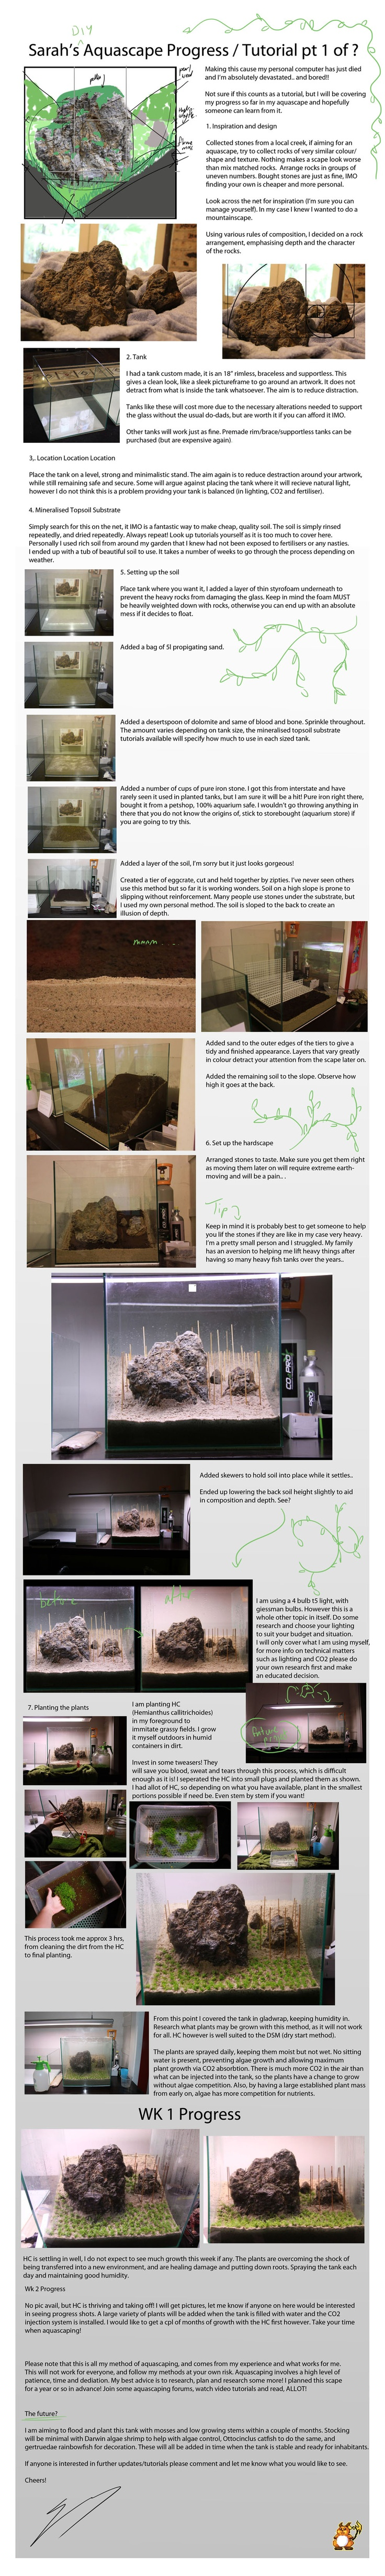 207 best Aquascaping images on Pinterest